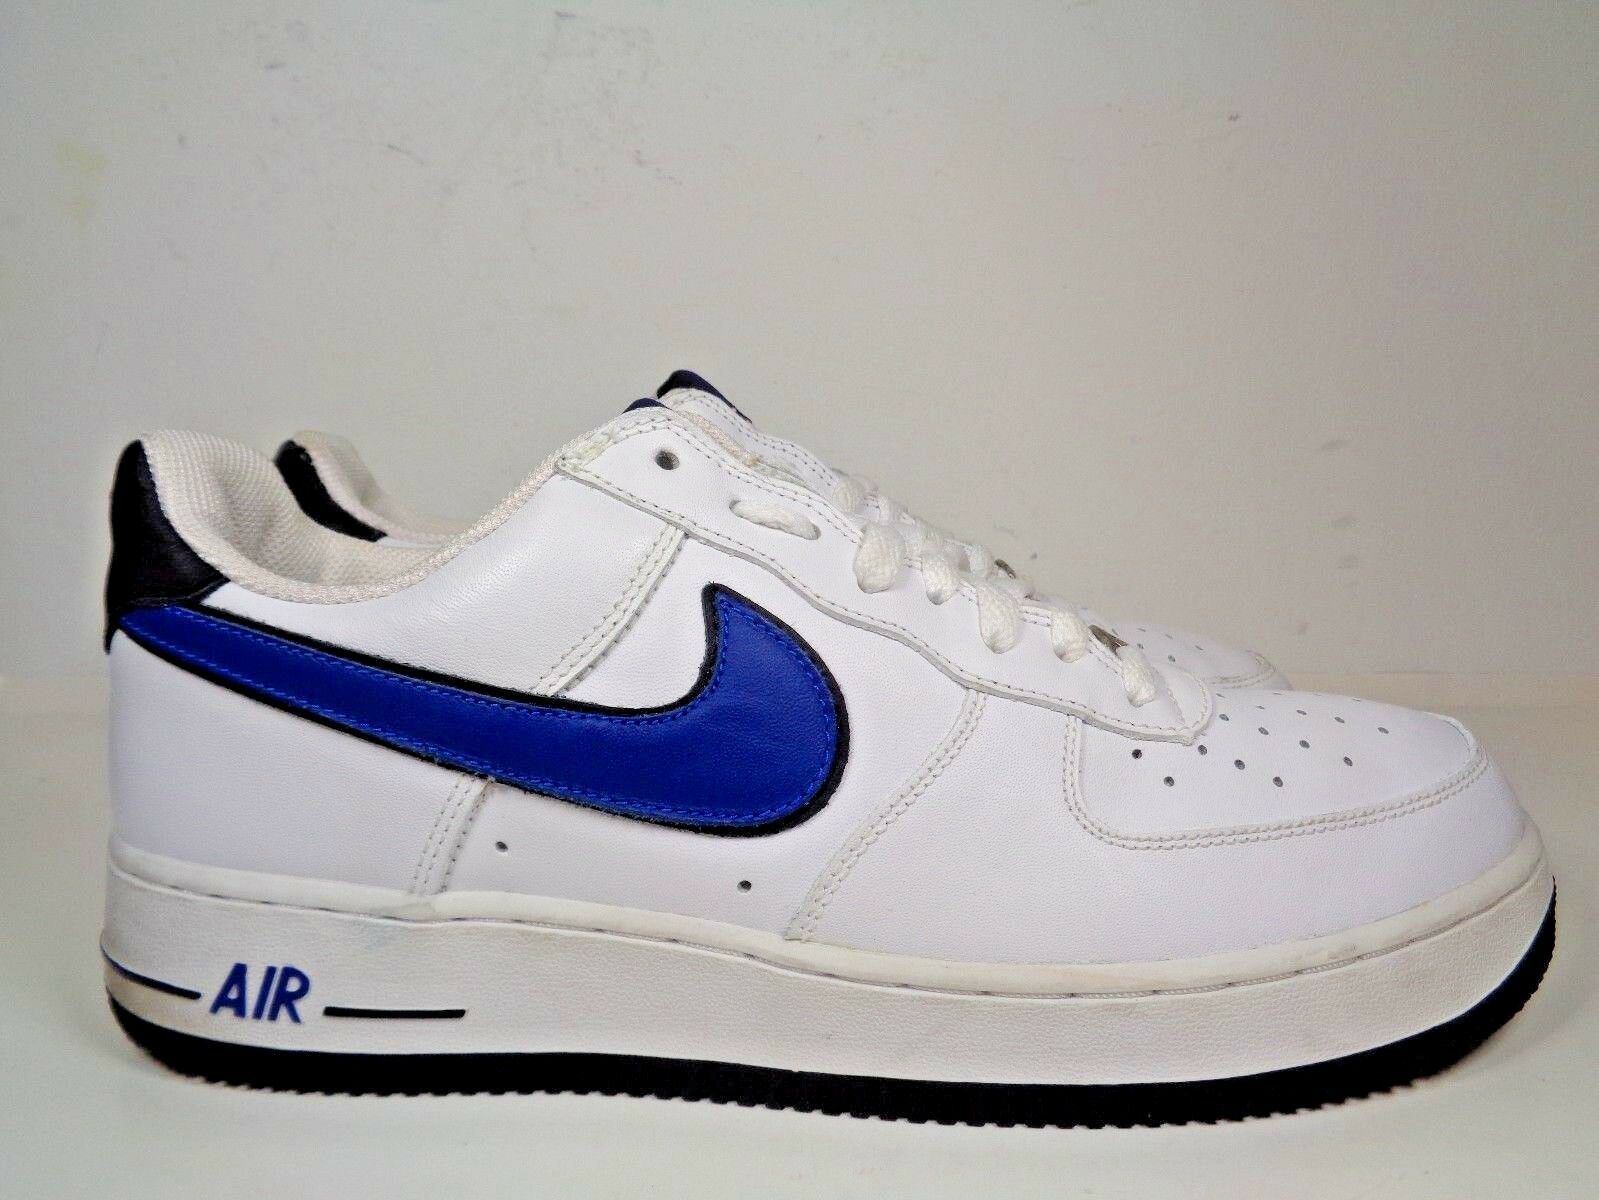 Mens Nike Air Force 1 Sport Royal Basketball shoes size 11 US 306353-143